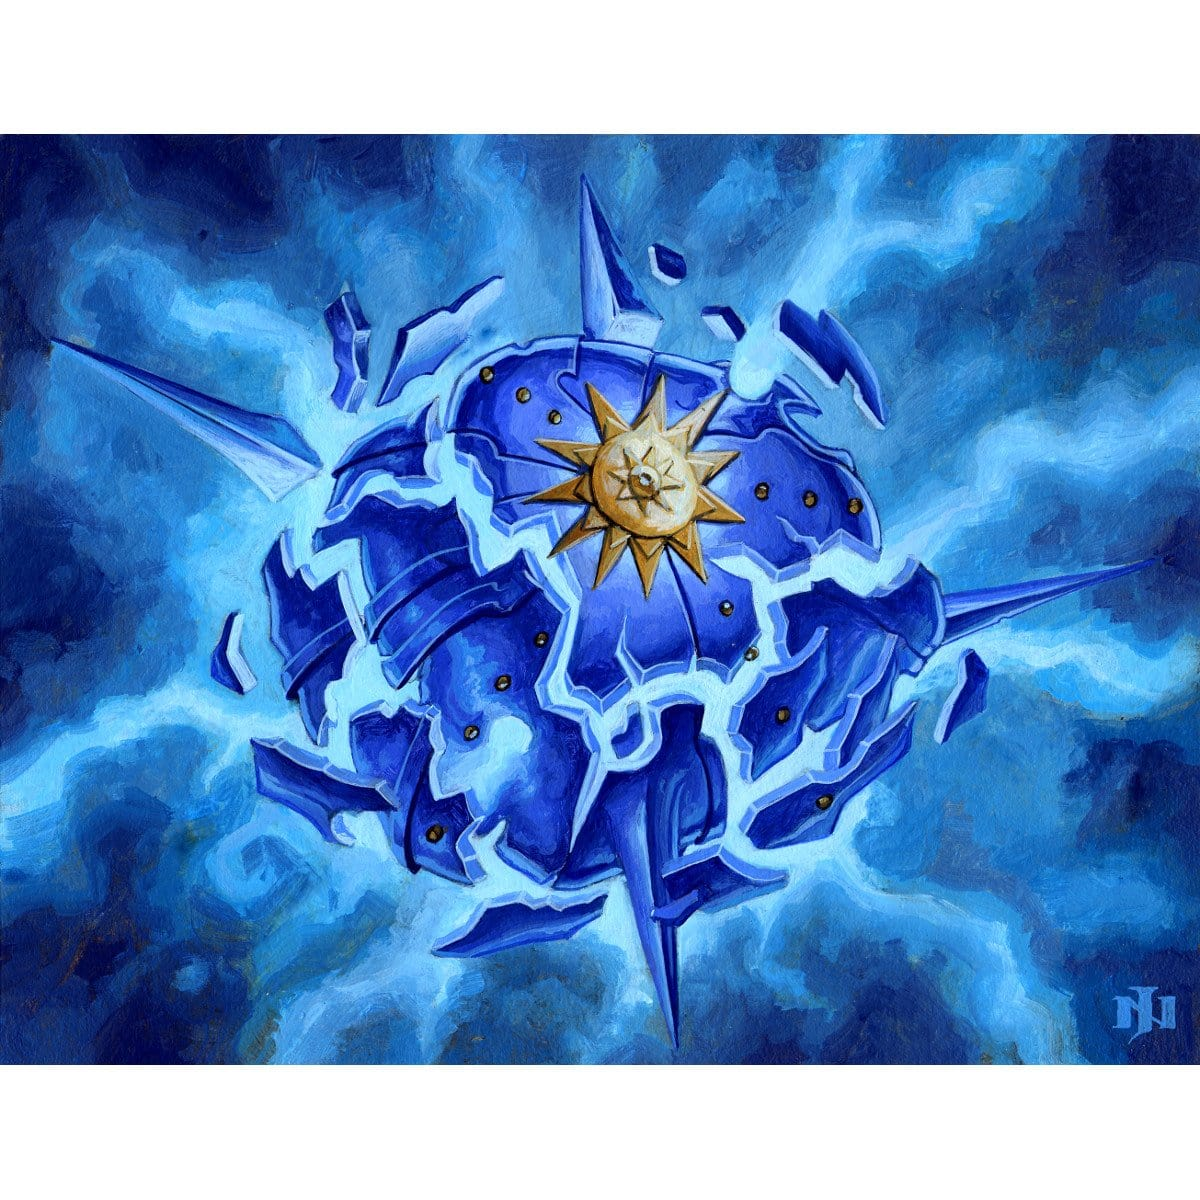 Aether Spellbomb Print - Print - Original Magic Art - Accessories for Magic the Gathering and other card games